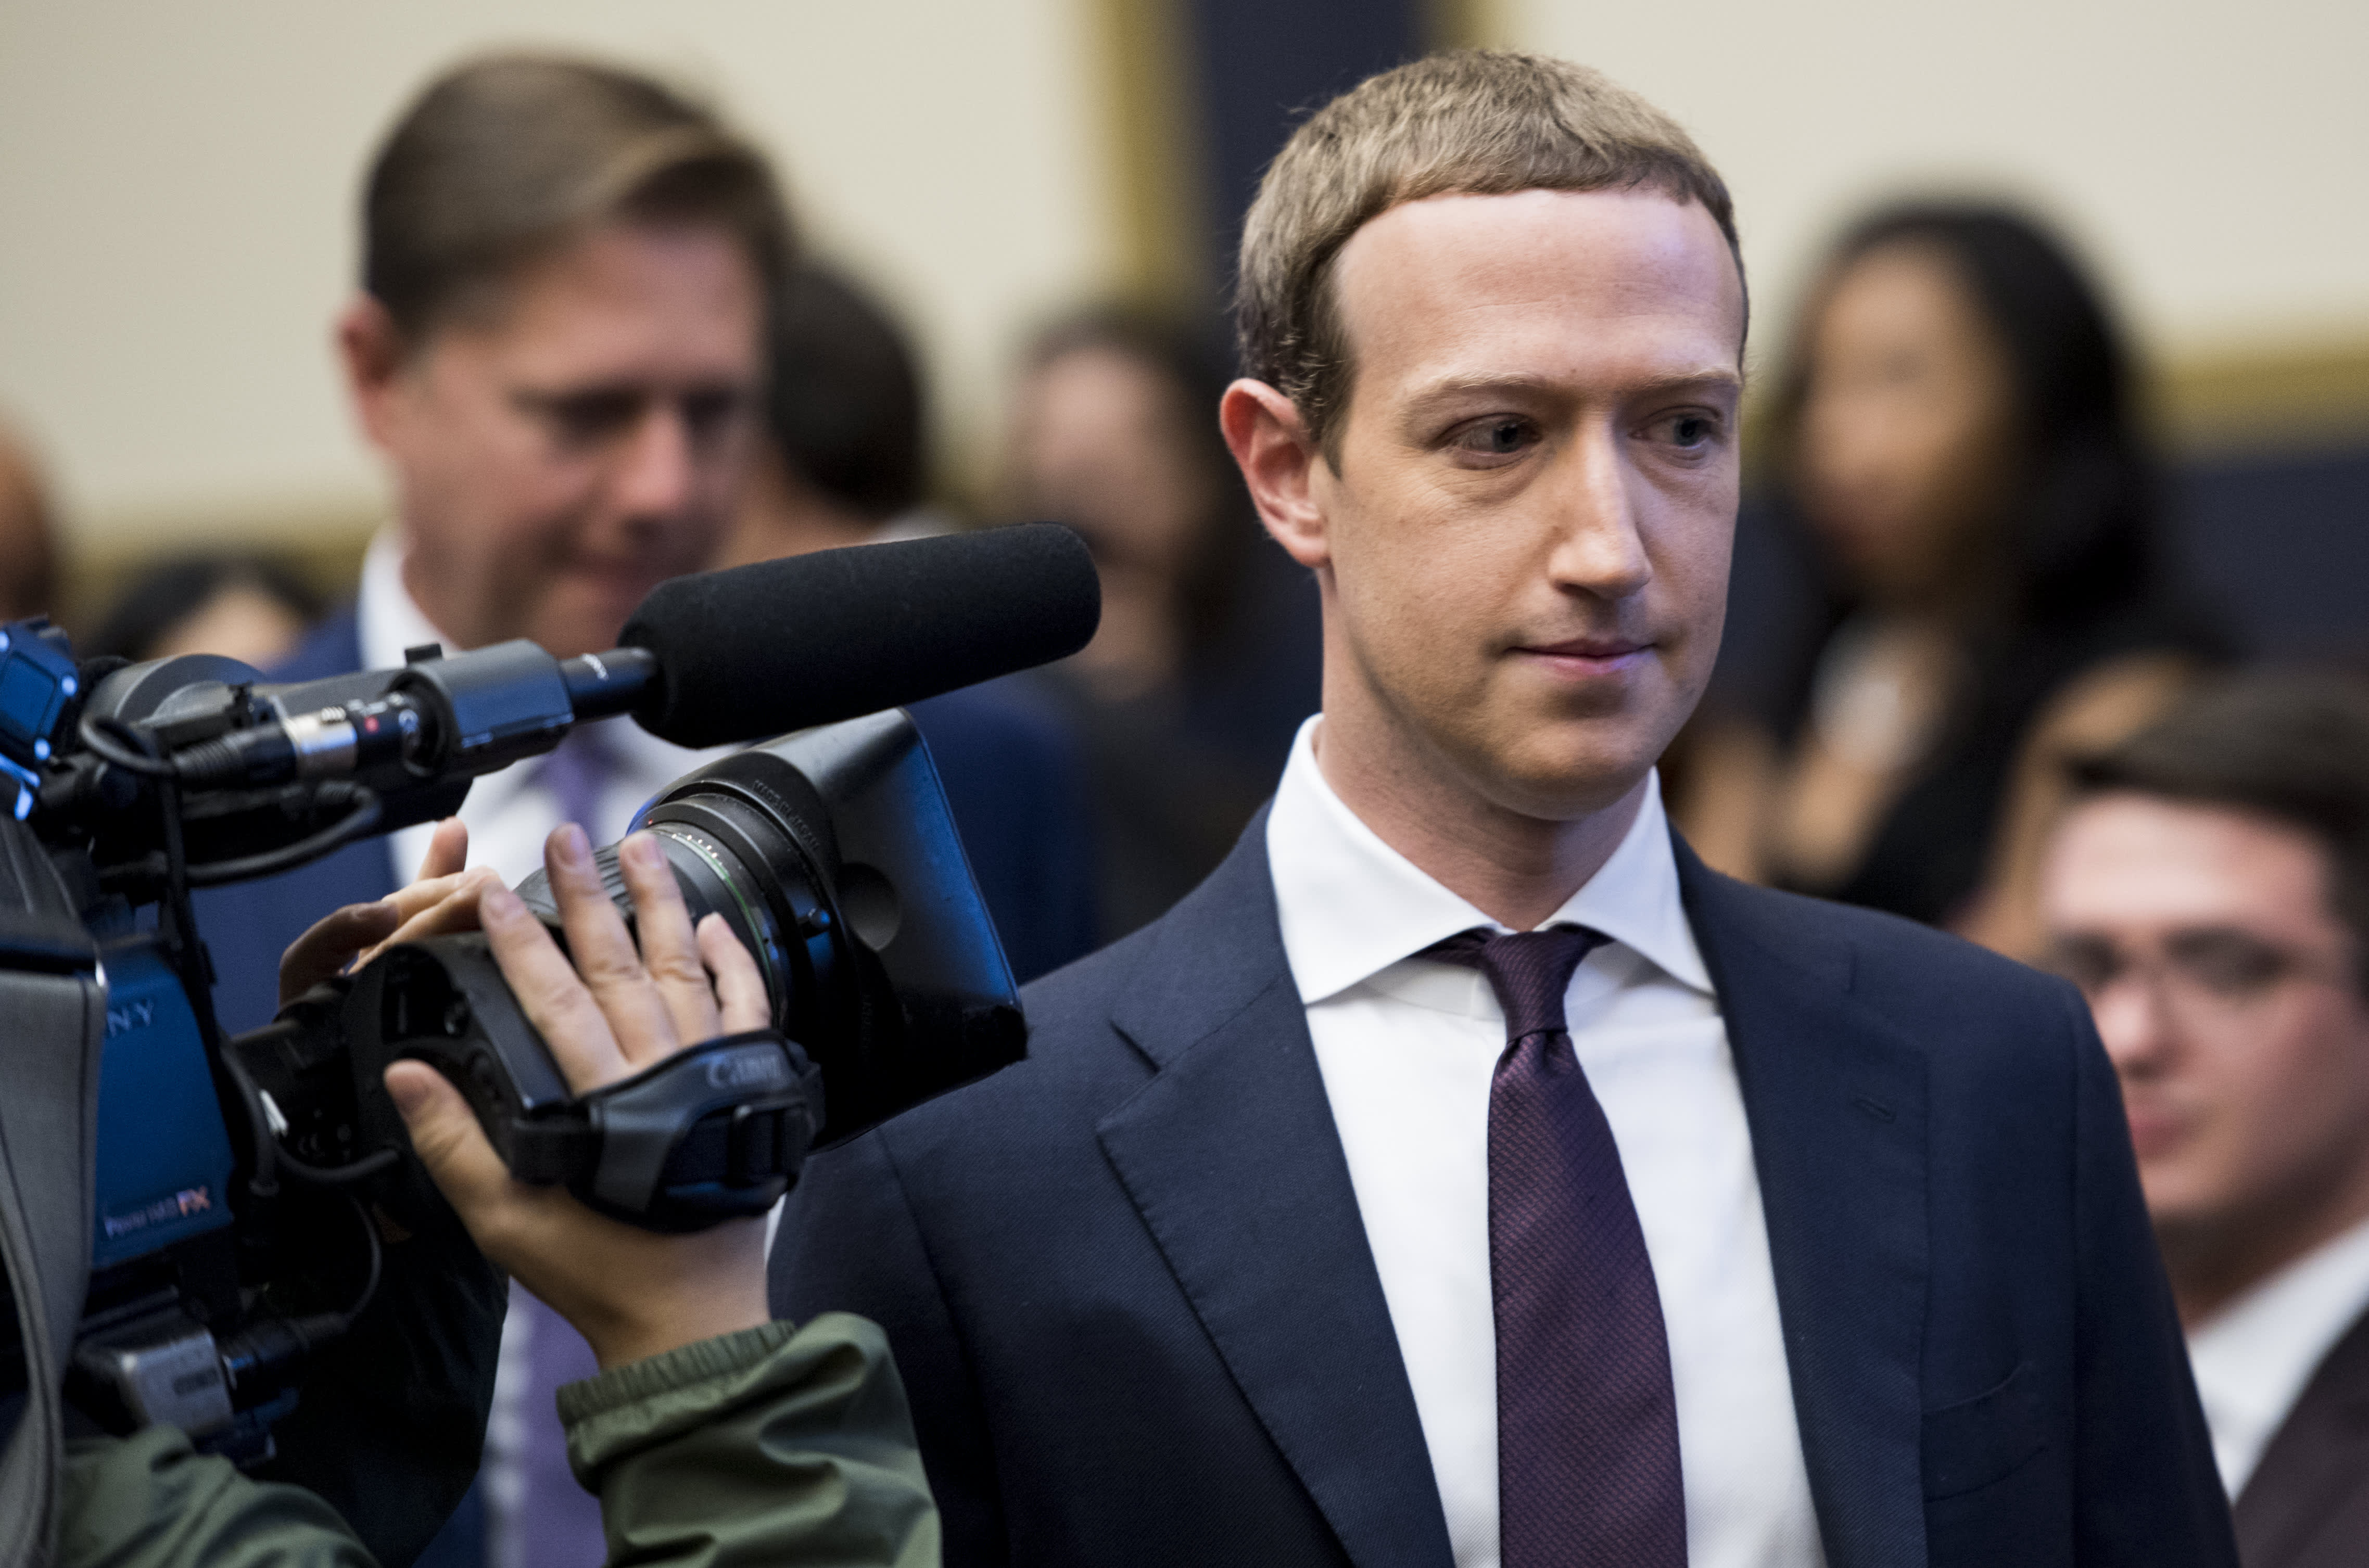 Image of article 'Civil rights leaders say they're 'disappointed and stunned' after call with Facebook's Zuckerberg and Sandberg'